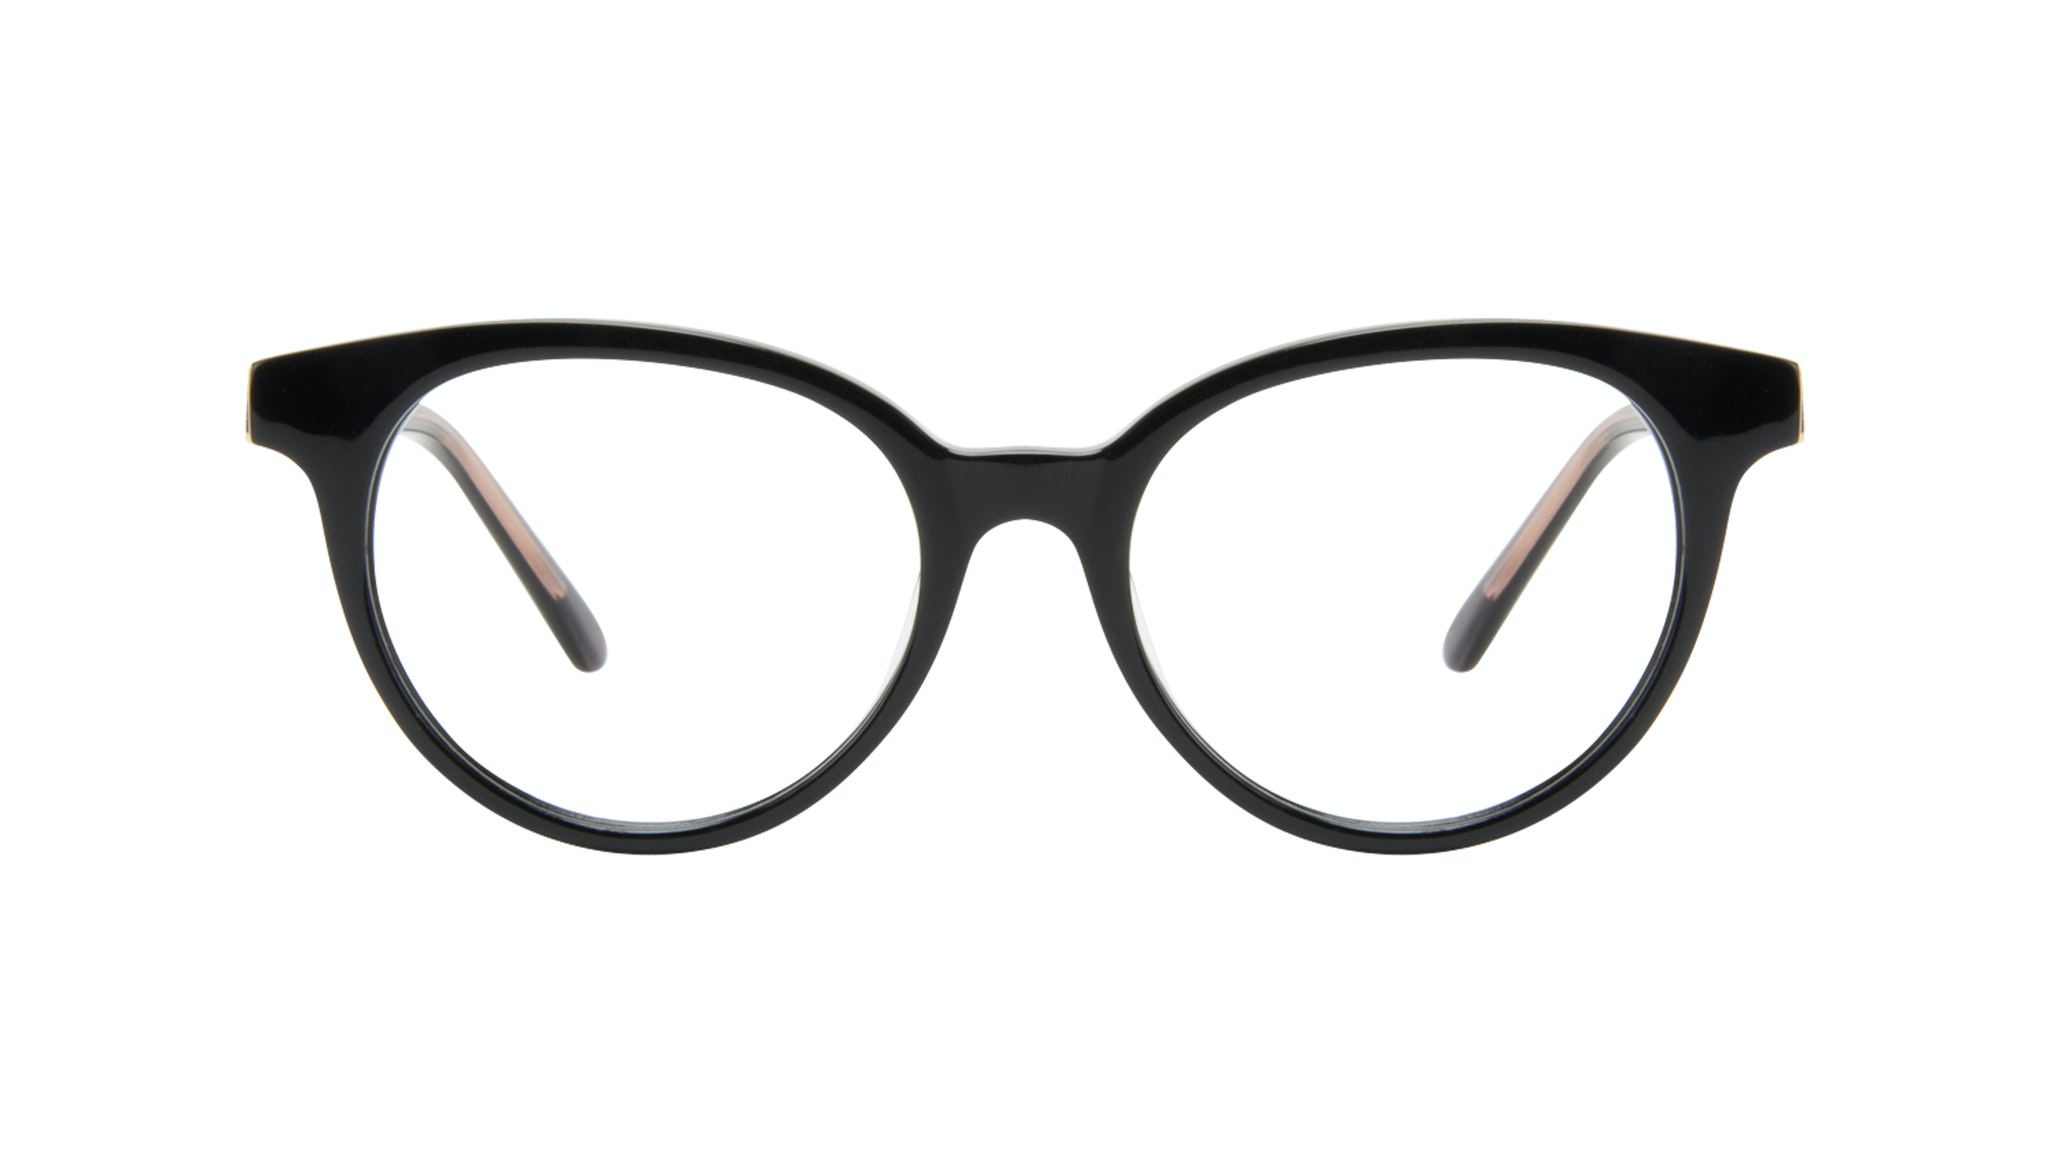 Affordable Fashion Glasses Round Eyeglasses Women Bright Black